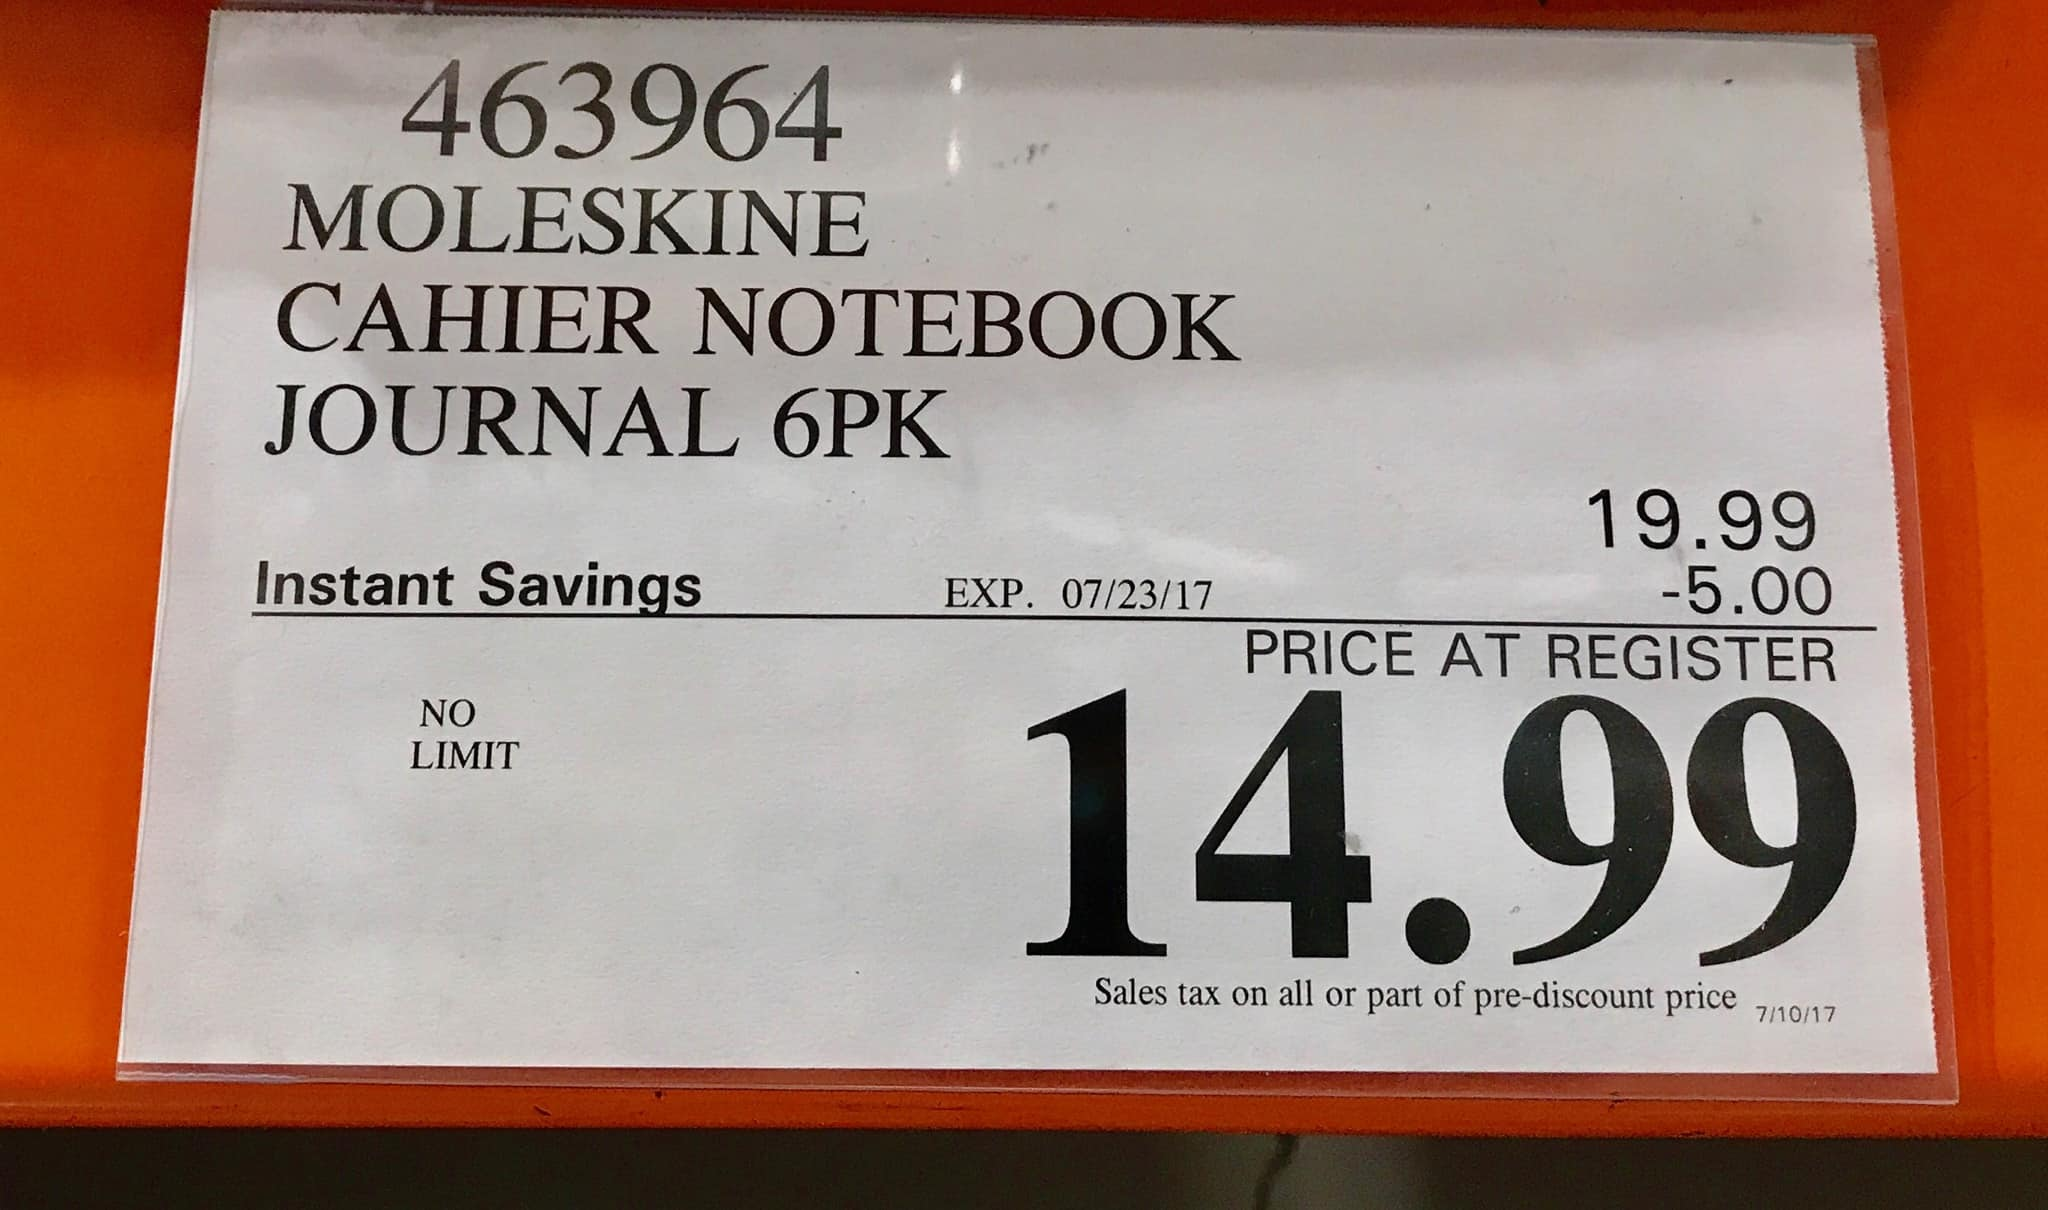 Moleskine Cahier 6-pack Journals - Extra Large Notebooks $15 Costco YMMV